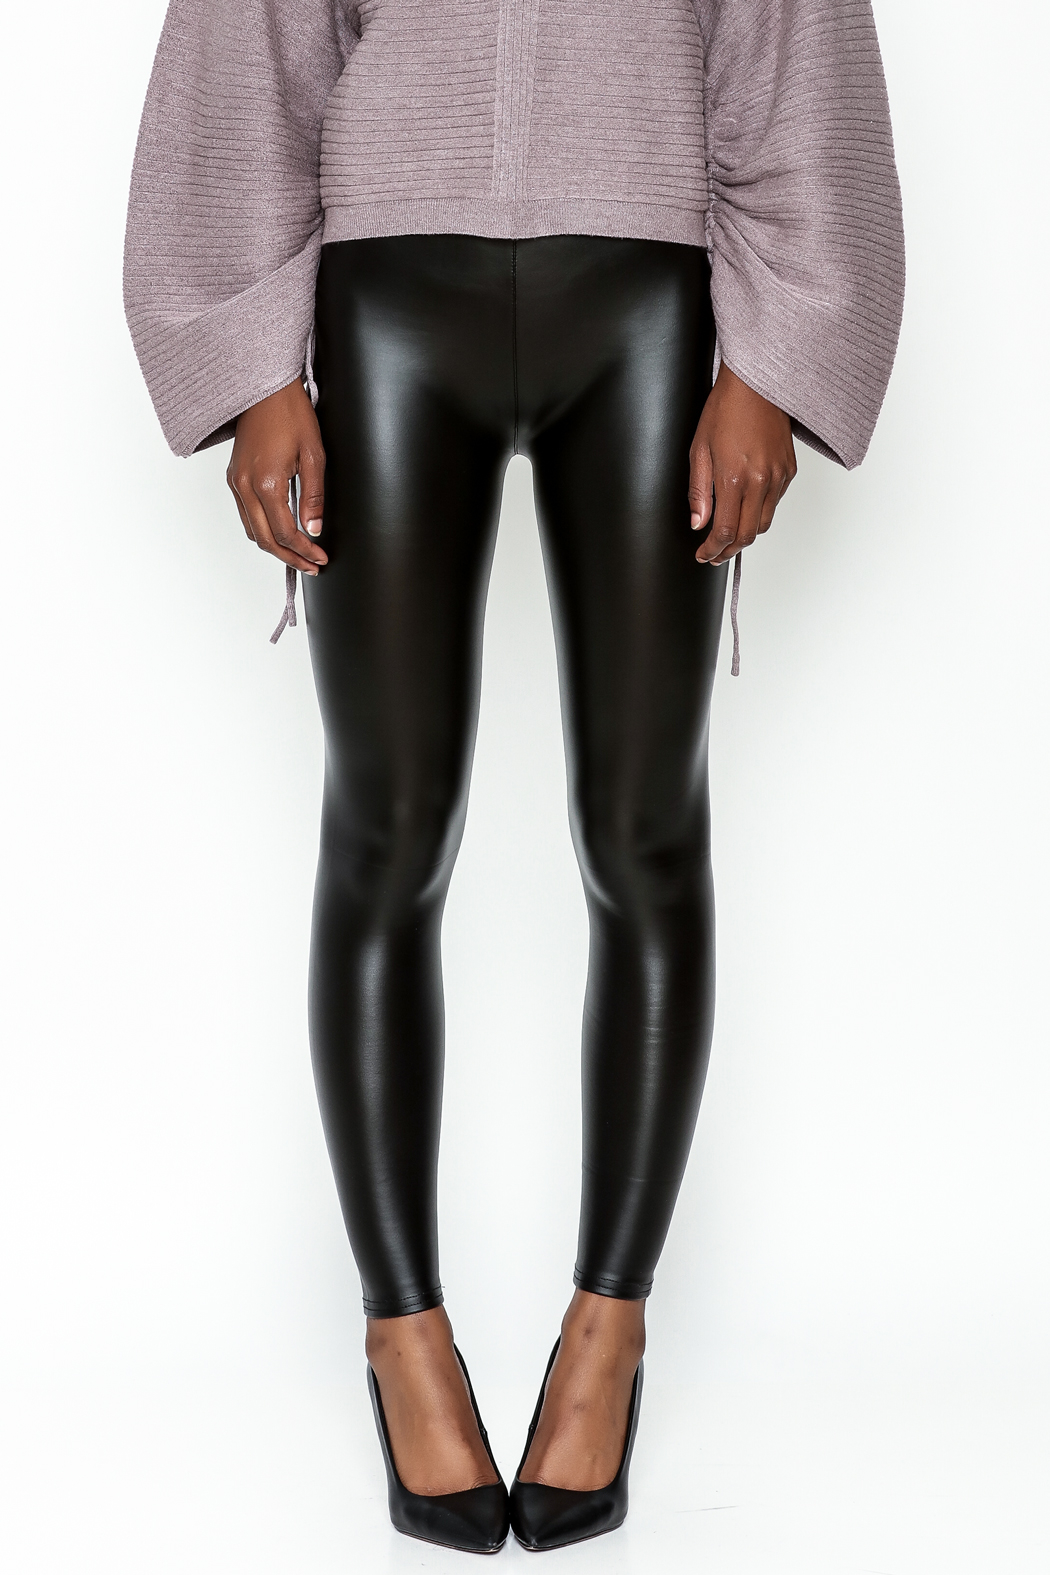 Polly & Esther Pleather Leggings - Front Full Image